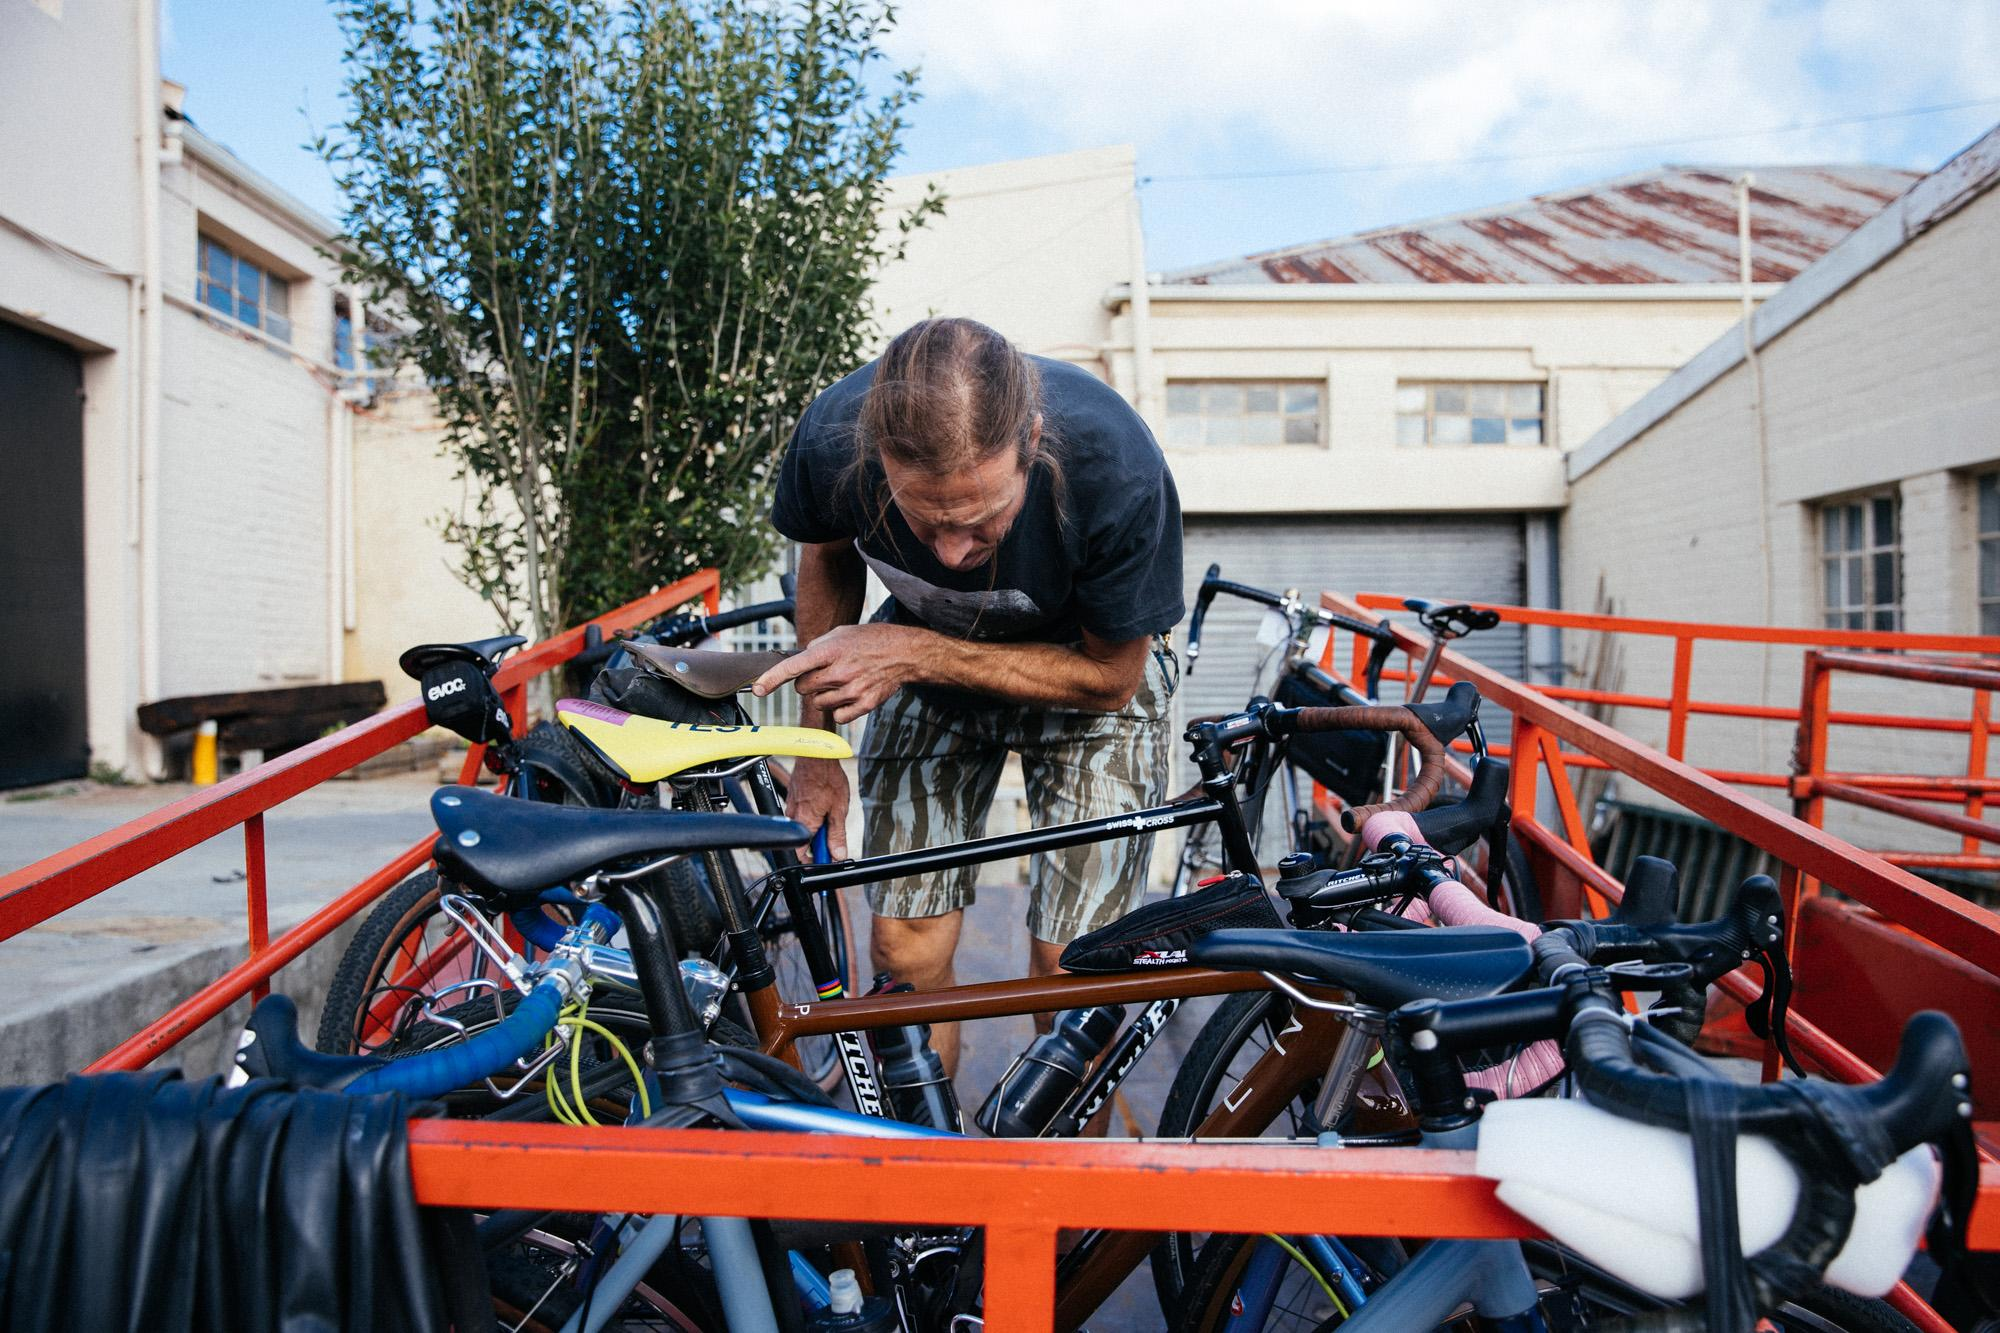 Rolf, packing the bikes.